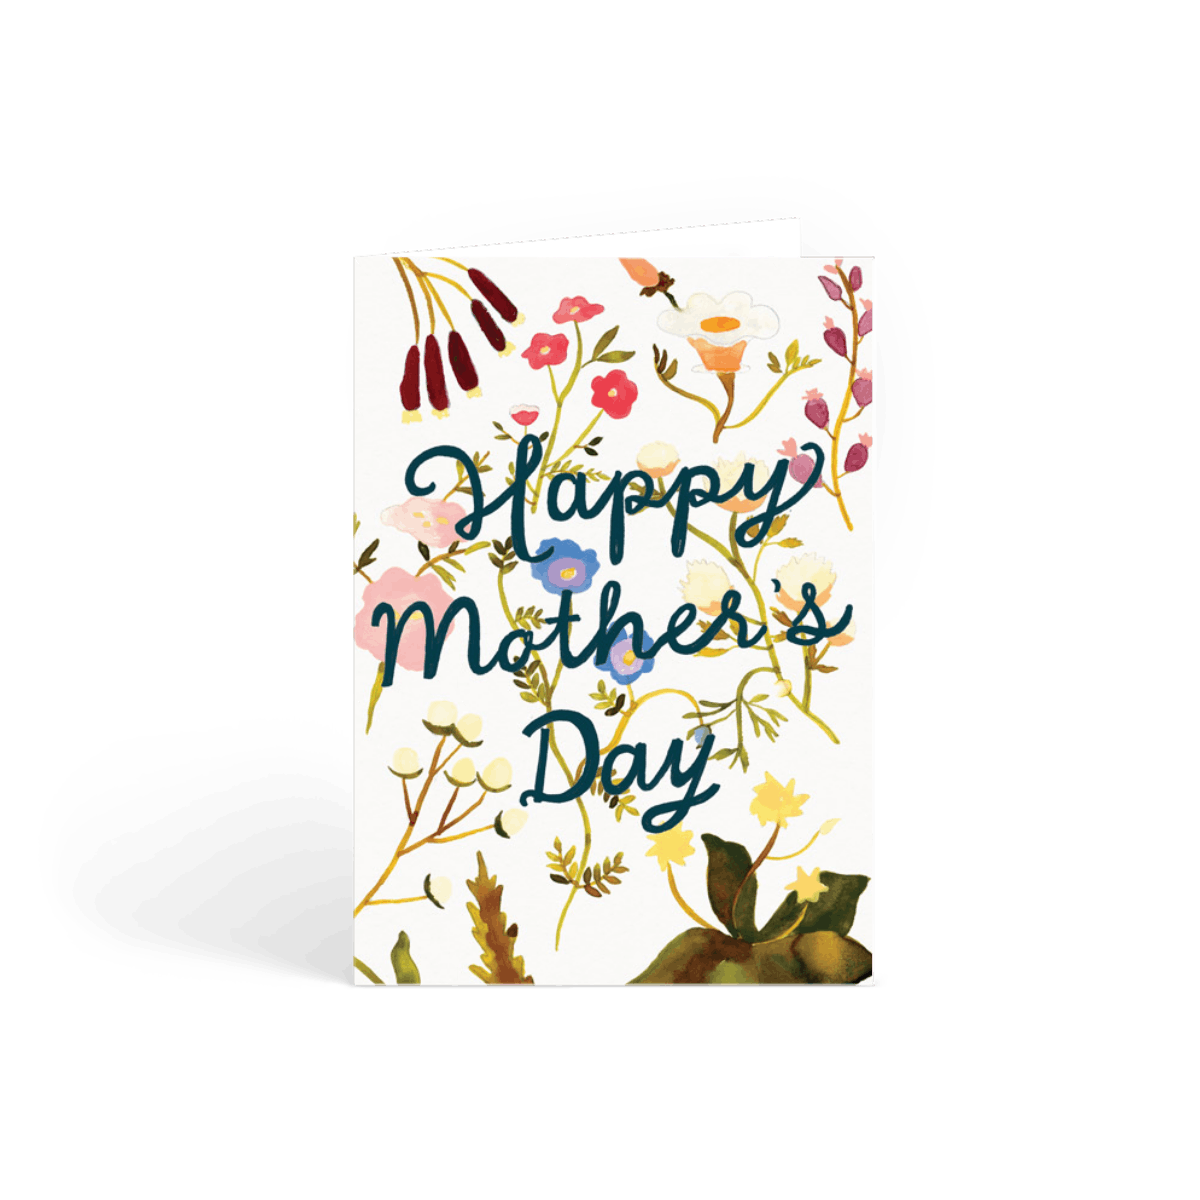 Https%3a%2f%2fwww.papier.com%2fproduct image%2f16936%2f2%2fmother s day wildflowers 4455 front 1485271928.png?ixlib=rb 1.1